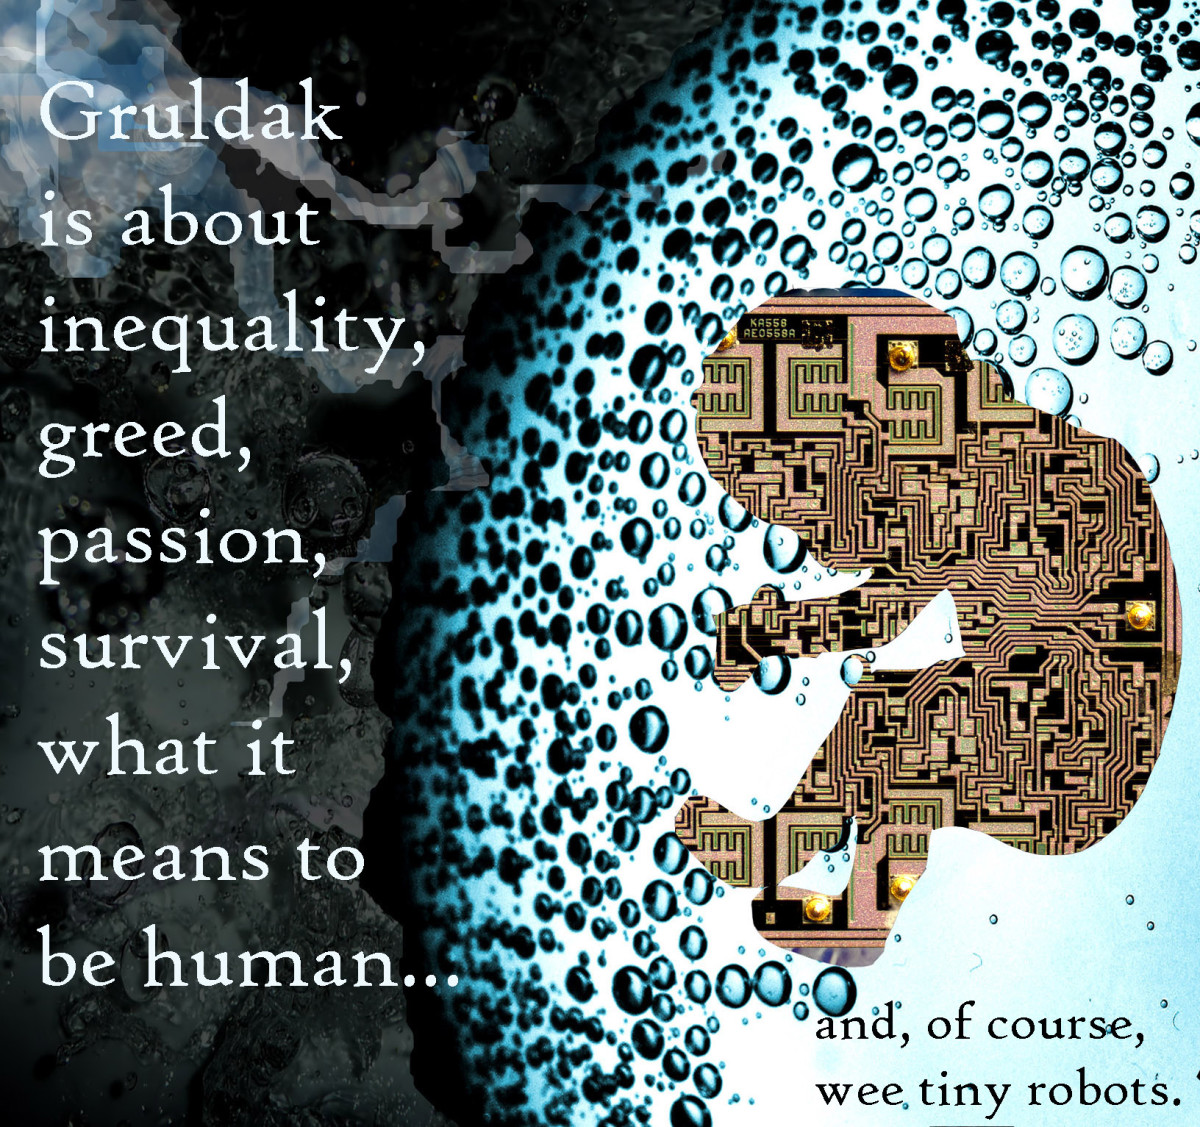 Gift of the Gruldak is a science fiction novel you can read live and free online as it's published in serial installments.